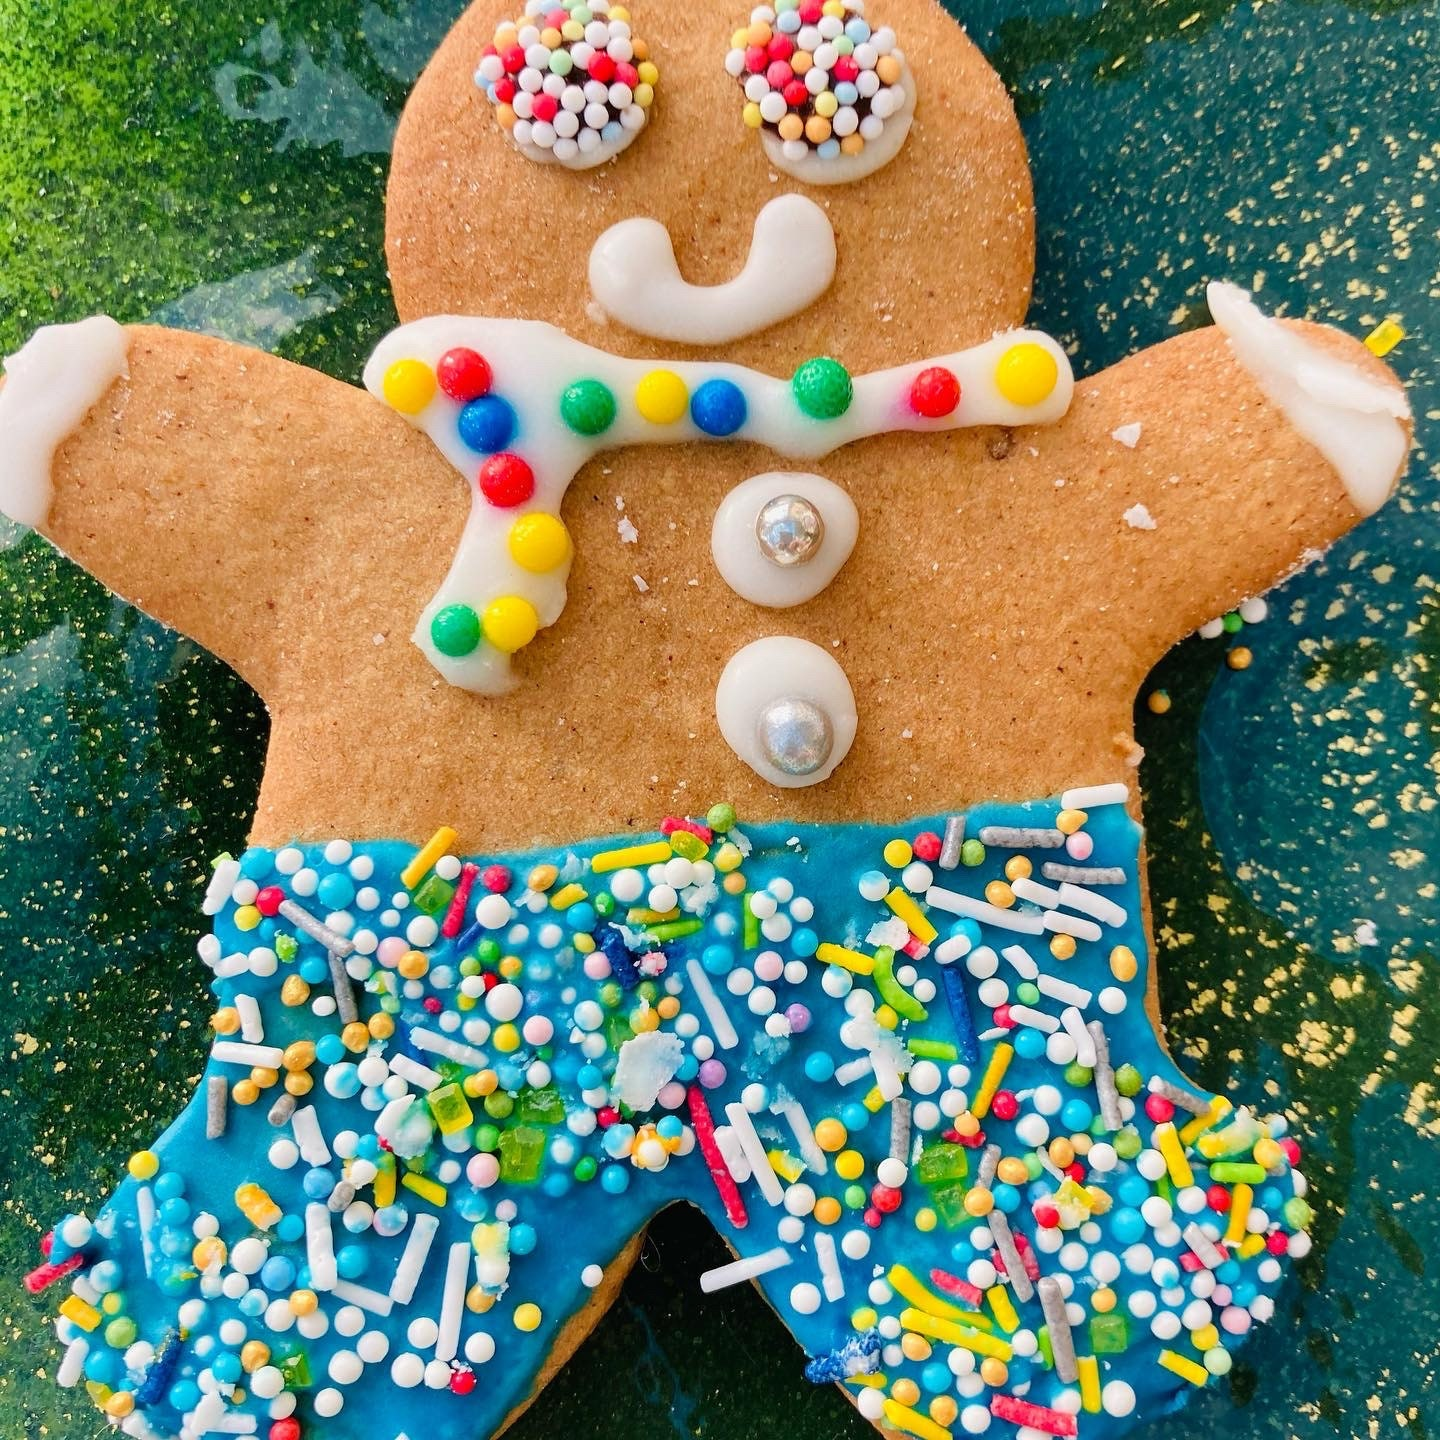 Joyful Gingerbread